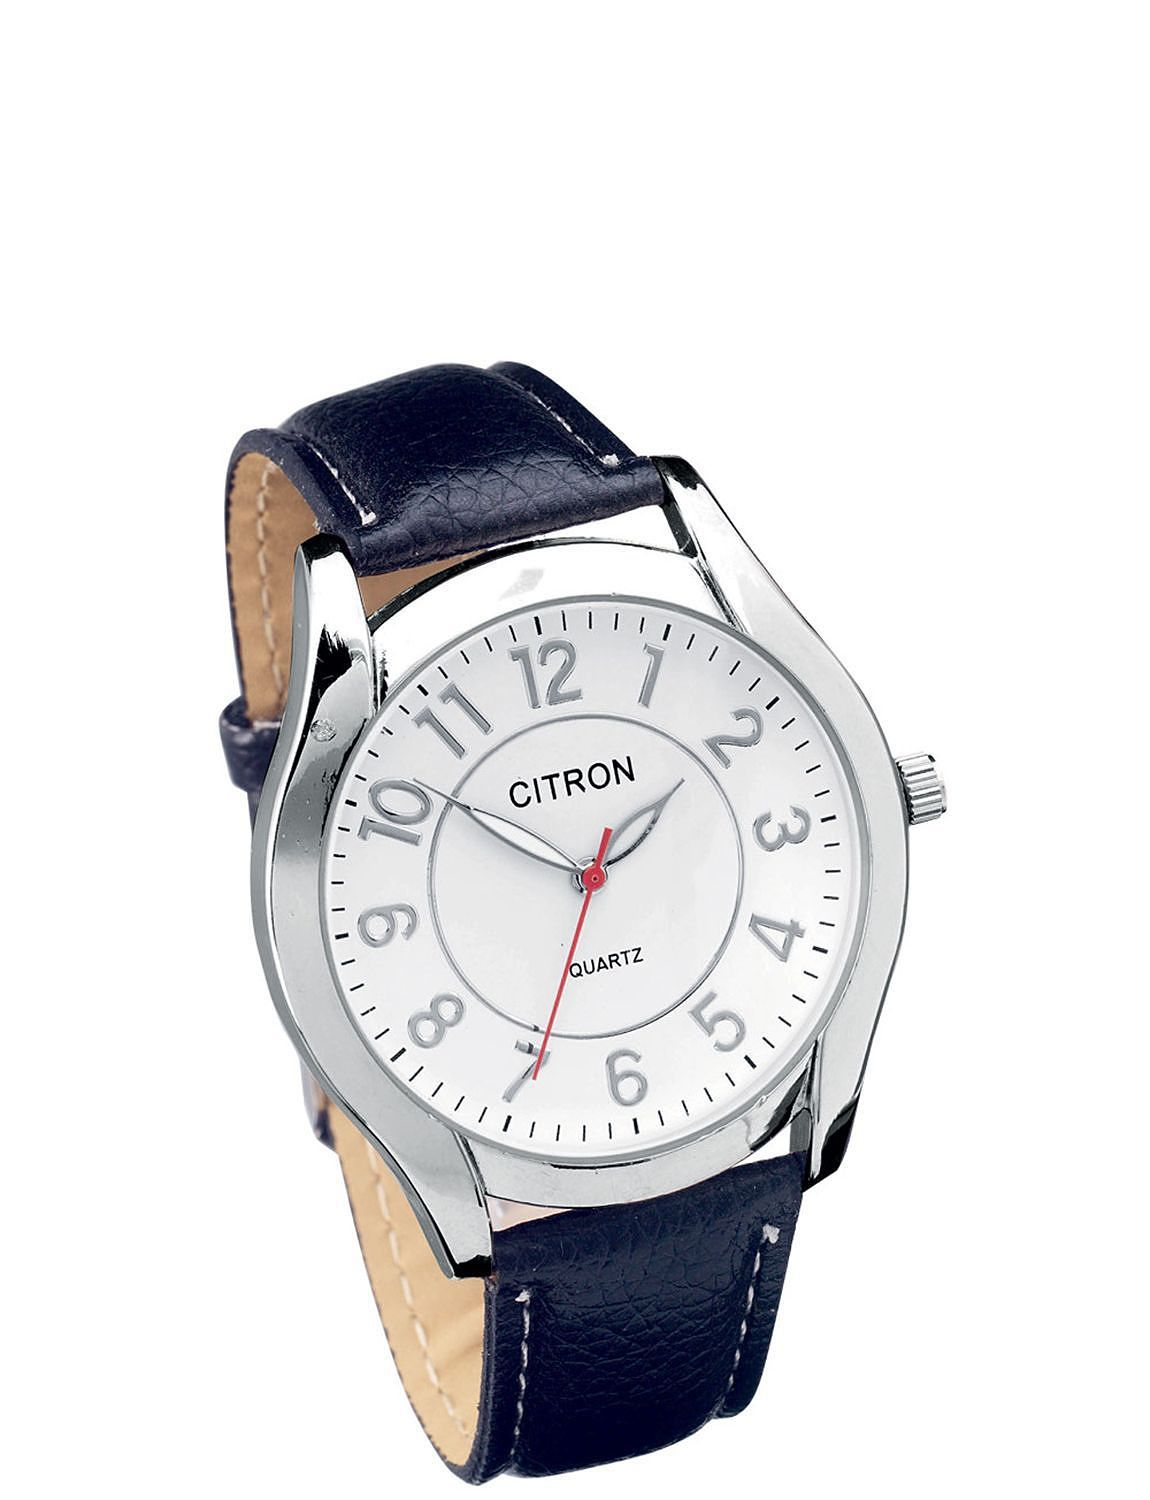 Citron Mens Analogue Watch Lifestyle Jewellery Amp Watches